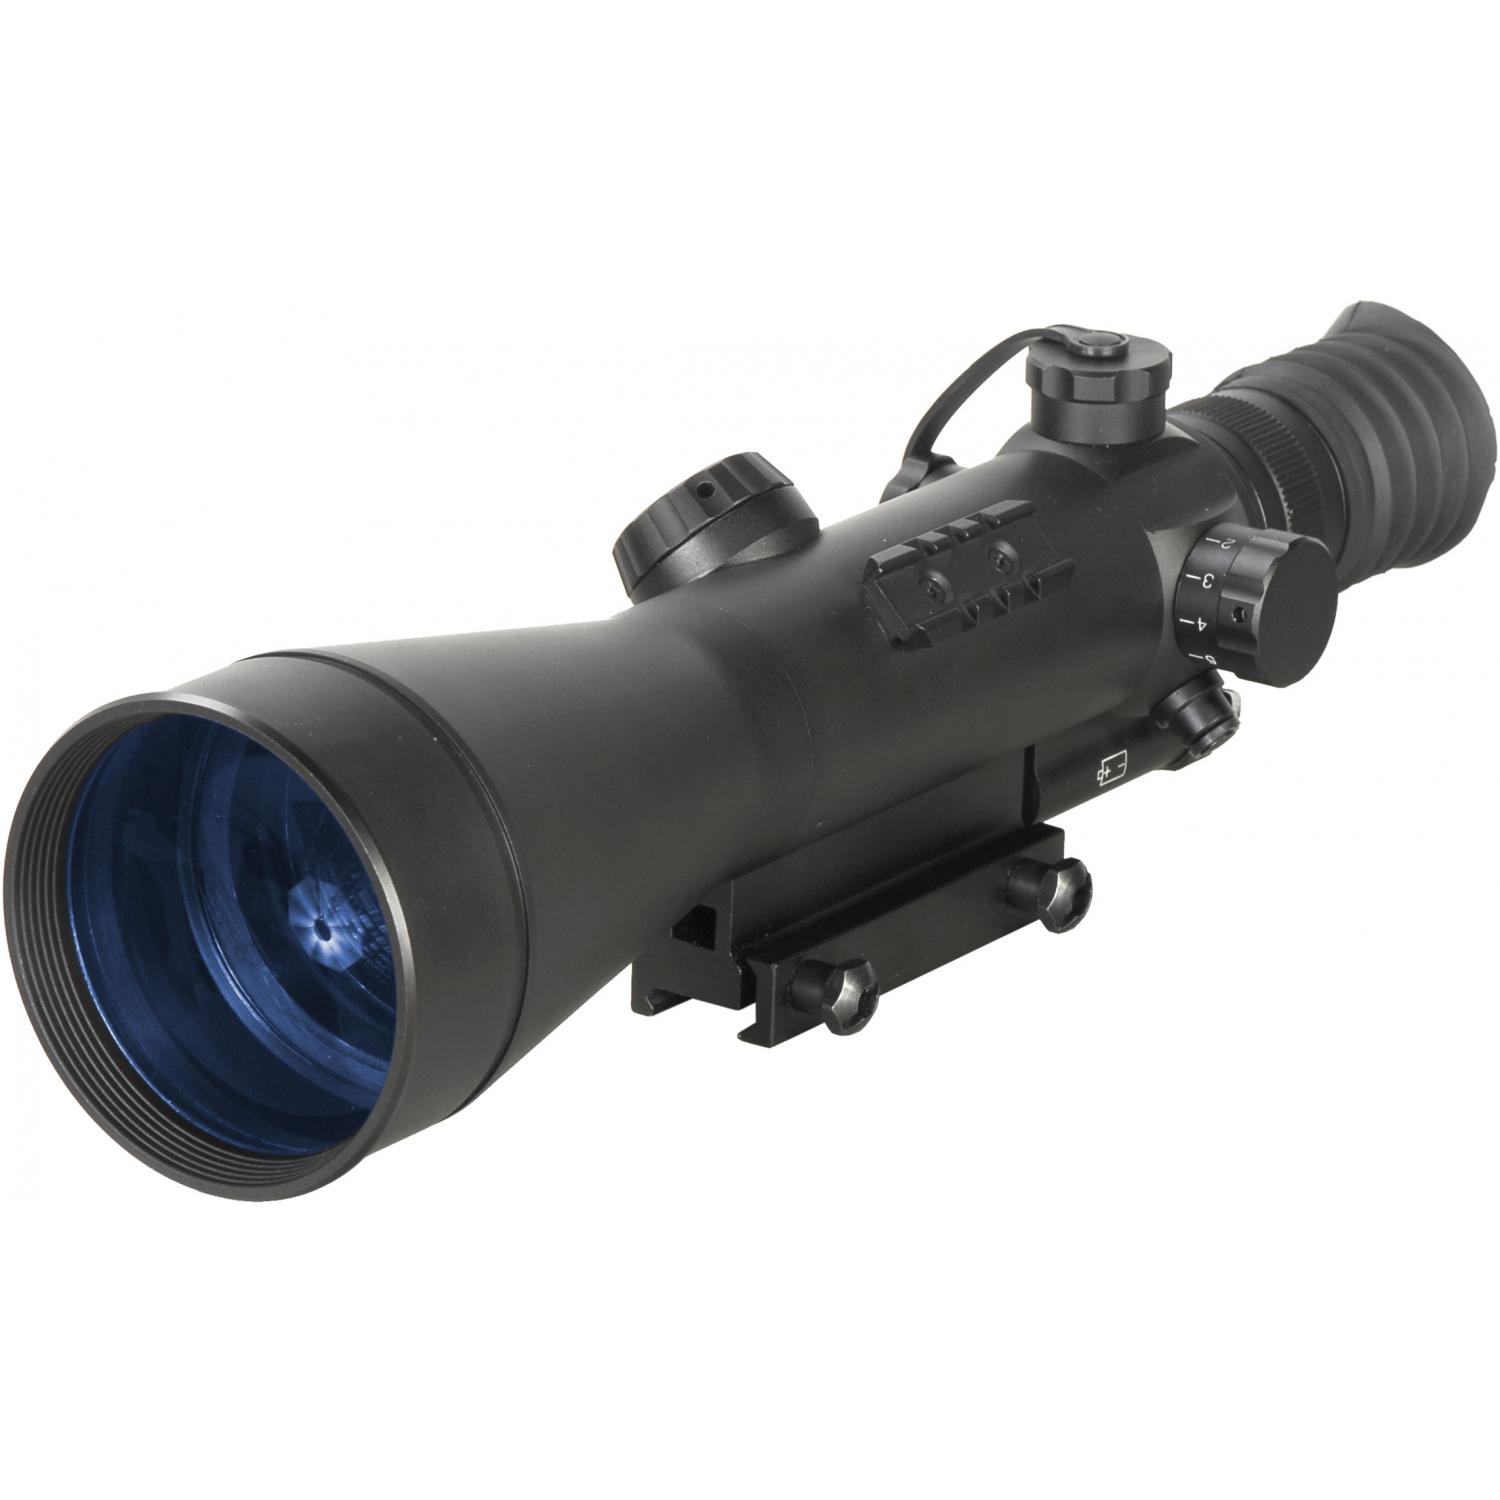 Atn Night Arrow6 Night Vision Weapon Sight With Gen Cgt 6x Magnification - Nvwsnar6c0